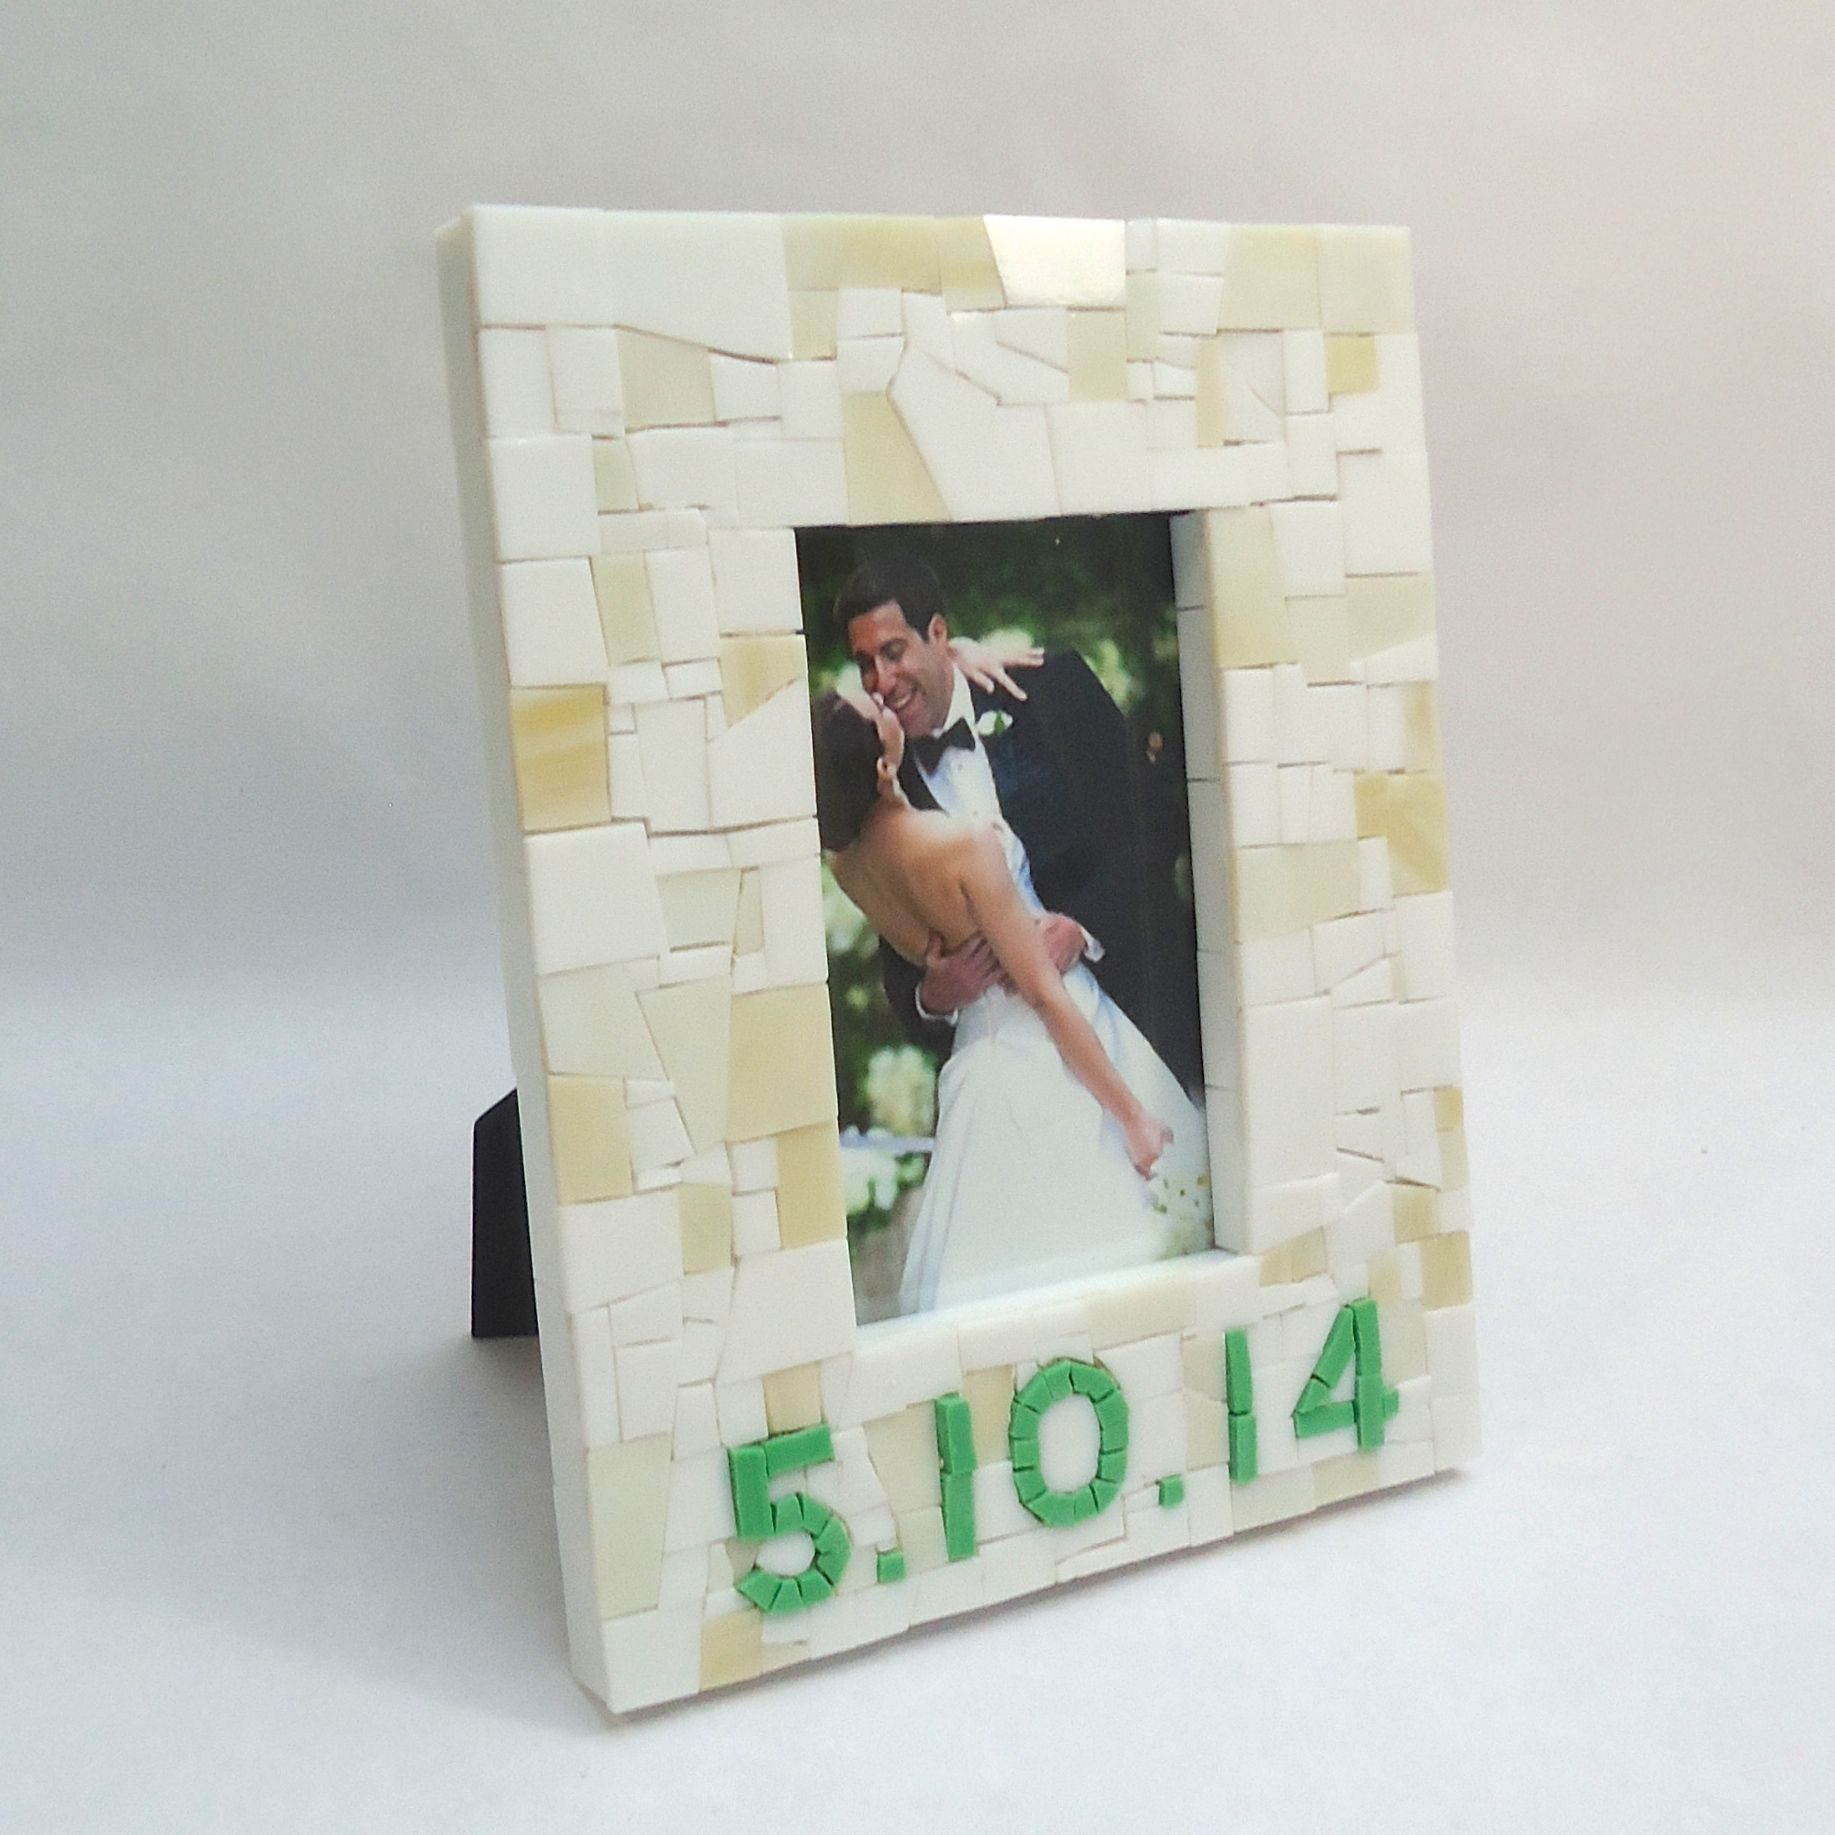 Buy a Handmade Mosaic Date Frame In White And Green, made to order ...